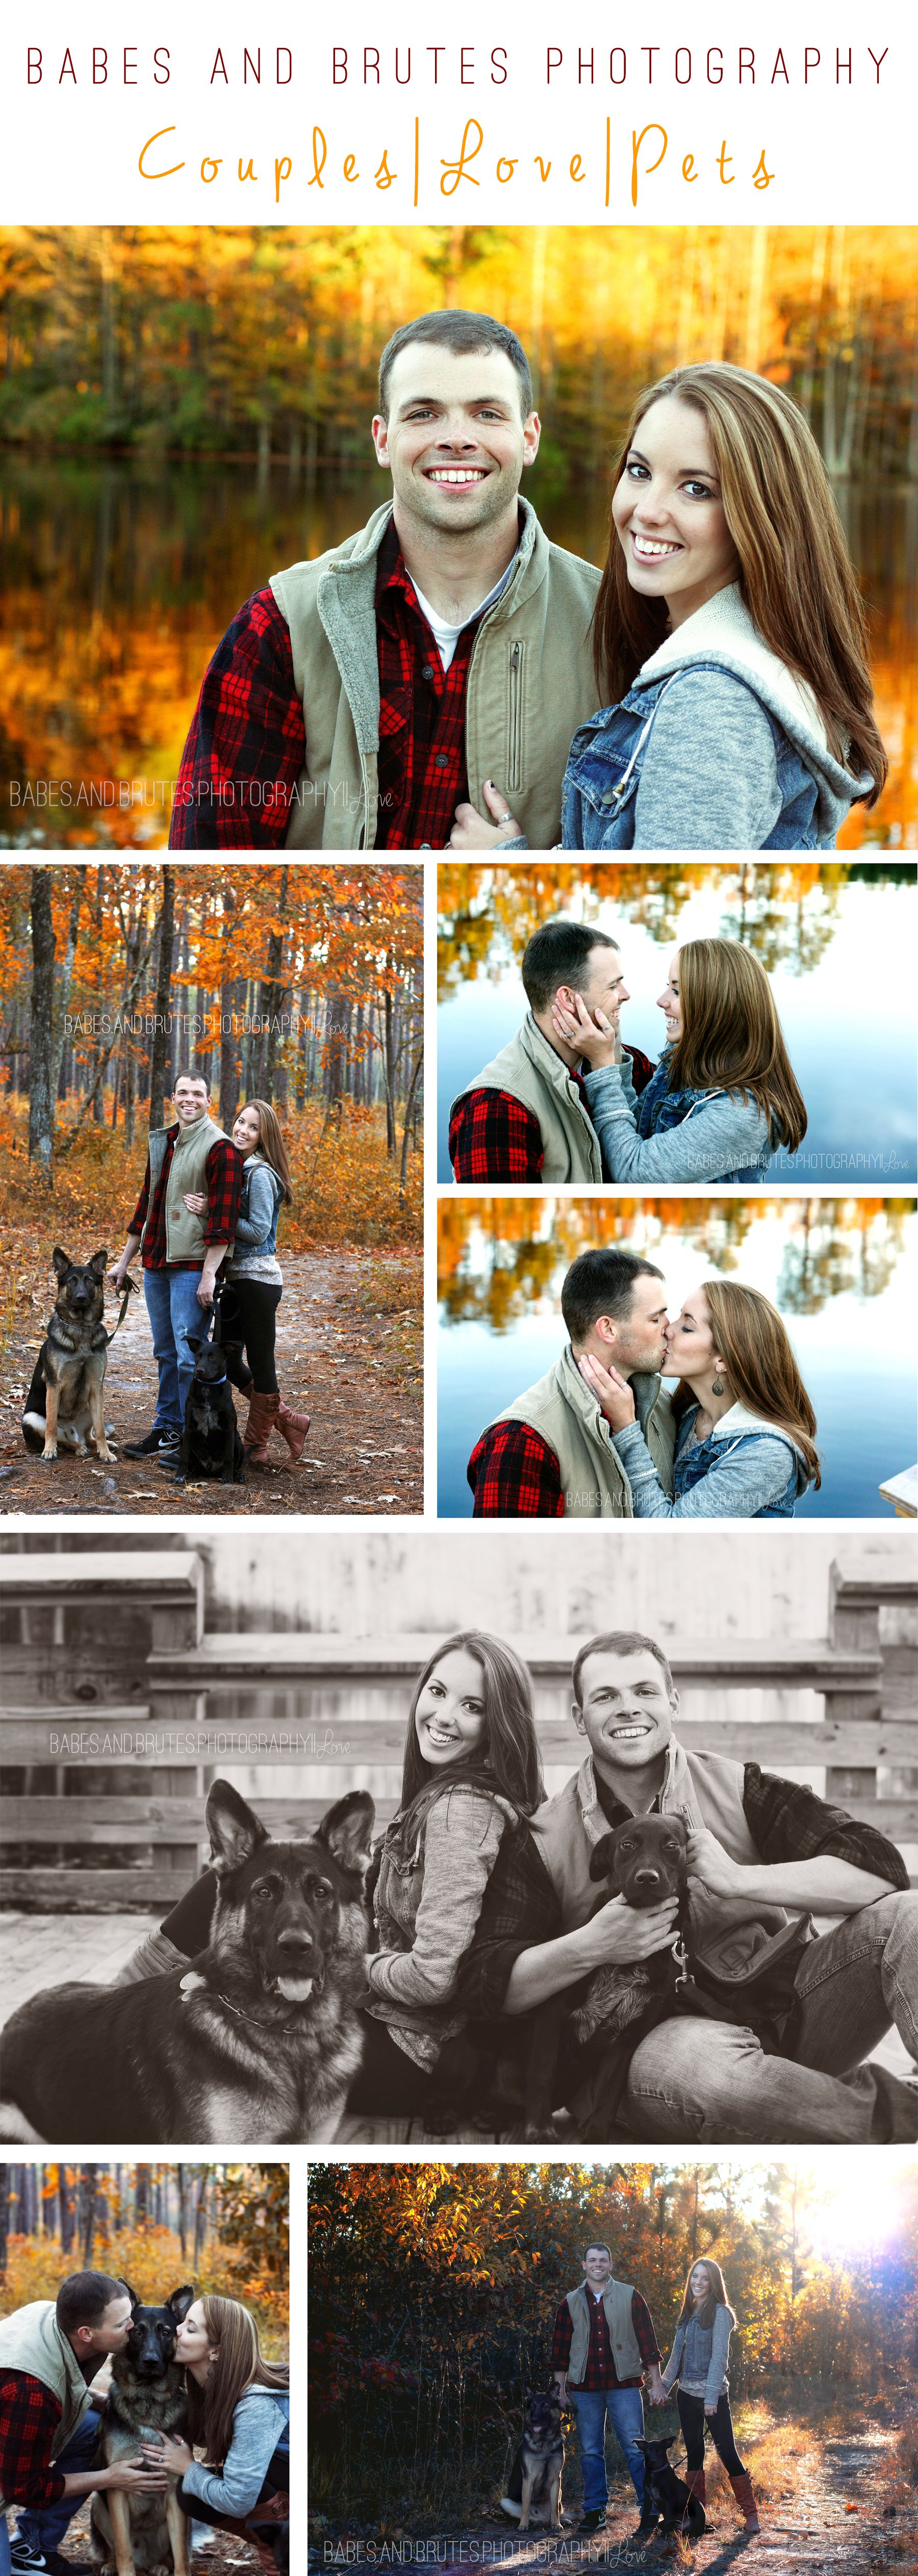 Couples|Love|Pets Babes and Brutes Photography  North Carolina Photographer www.babesandbrutesphotography.com  #couples #love #pets #photography #babesandbrutesphotography #northcarolina #fayetteville #fortbragg